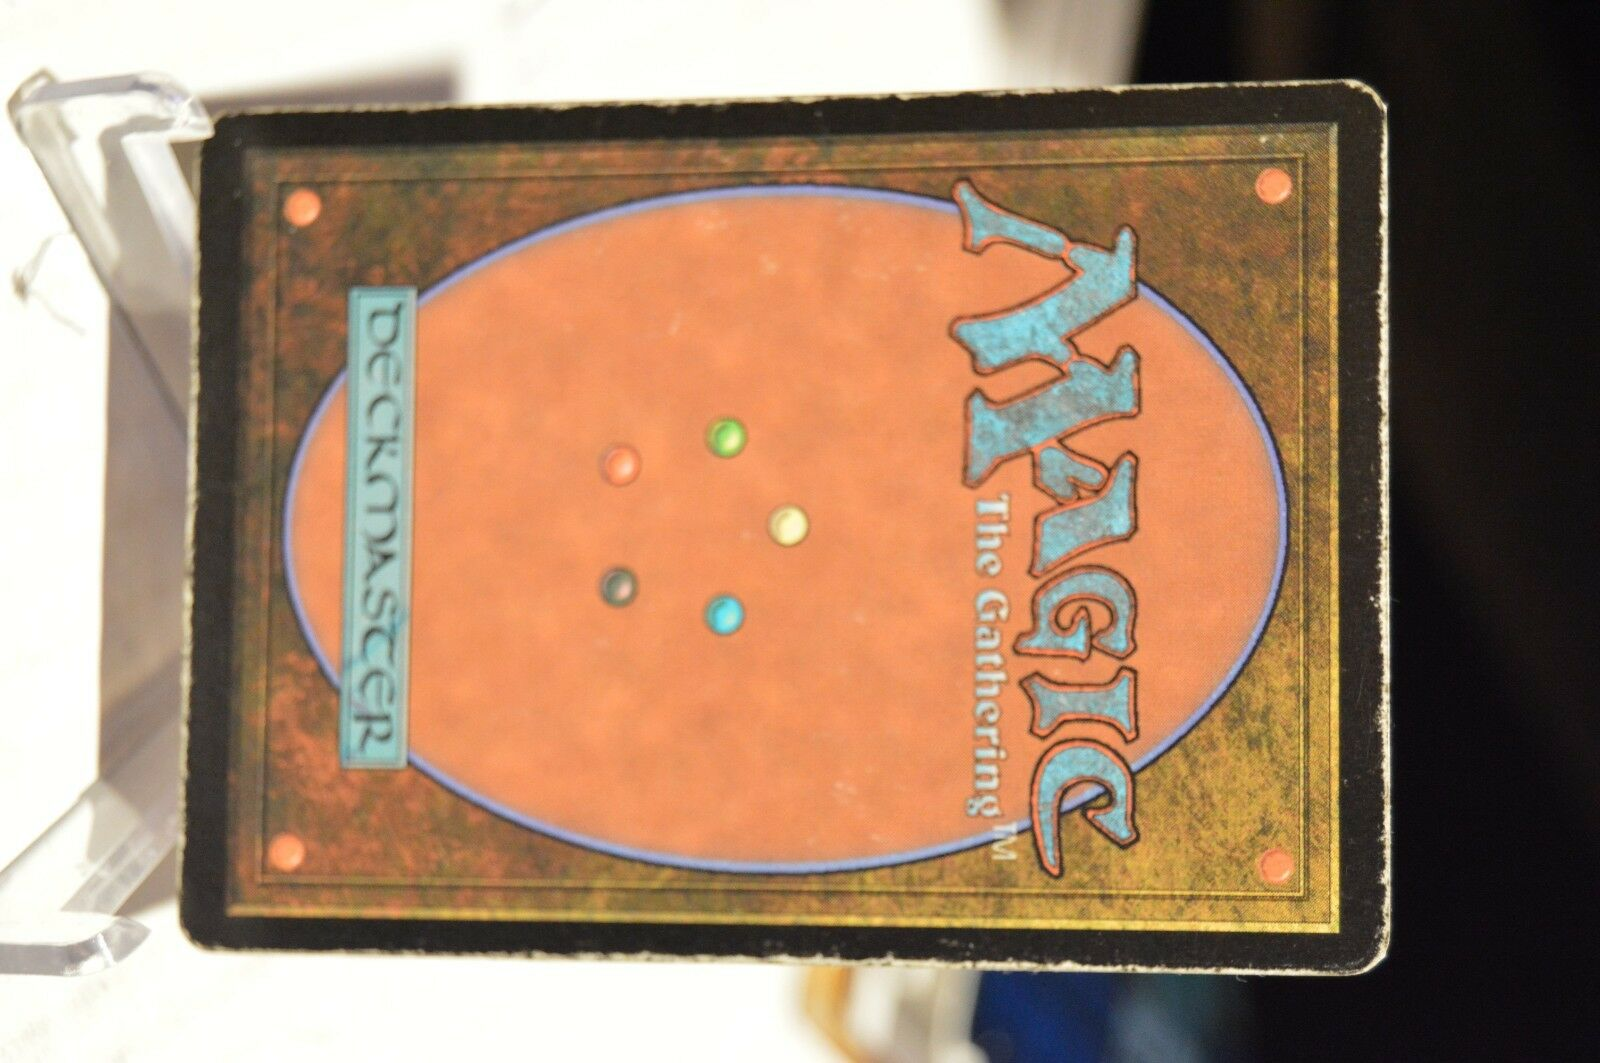 Foil altered art REAL REAL REAL Bribery from urza's legacy destiny MTG Magic gathering cdc015